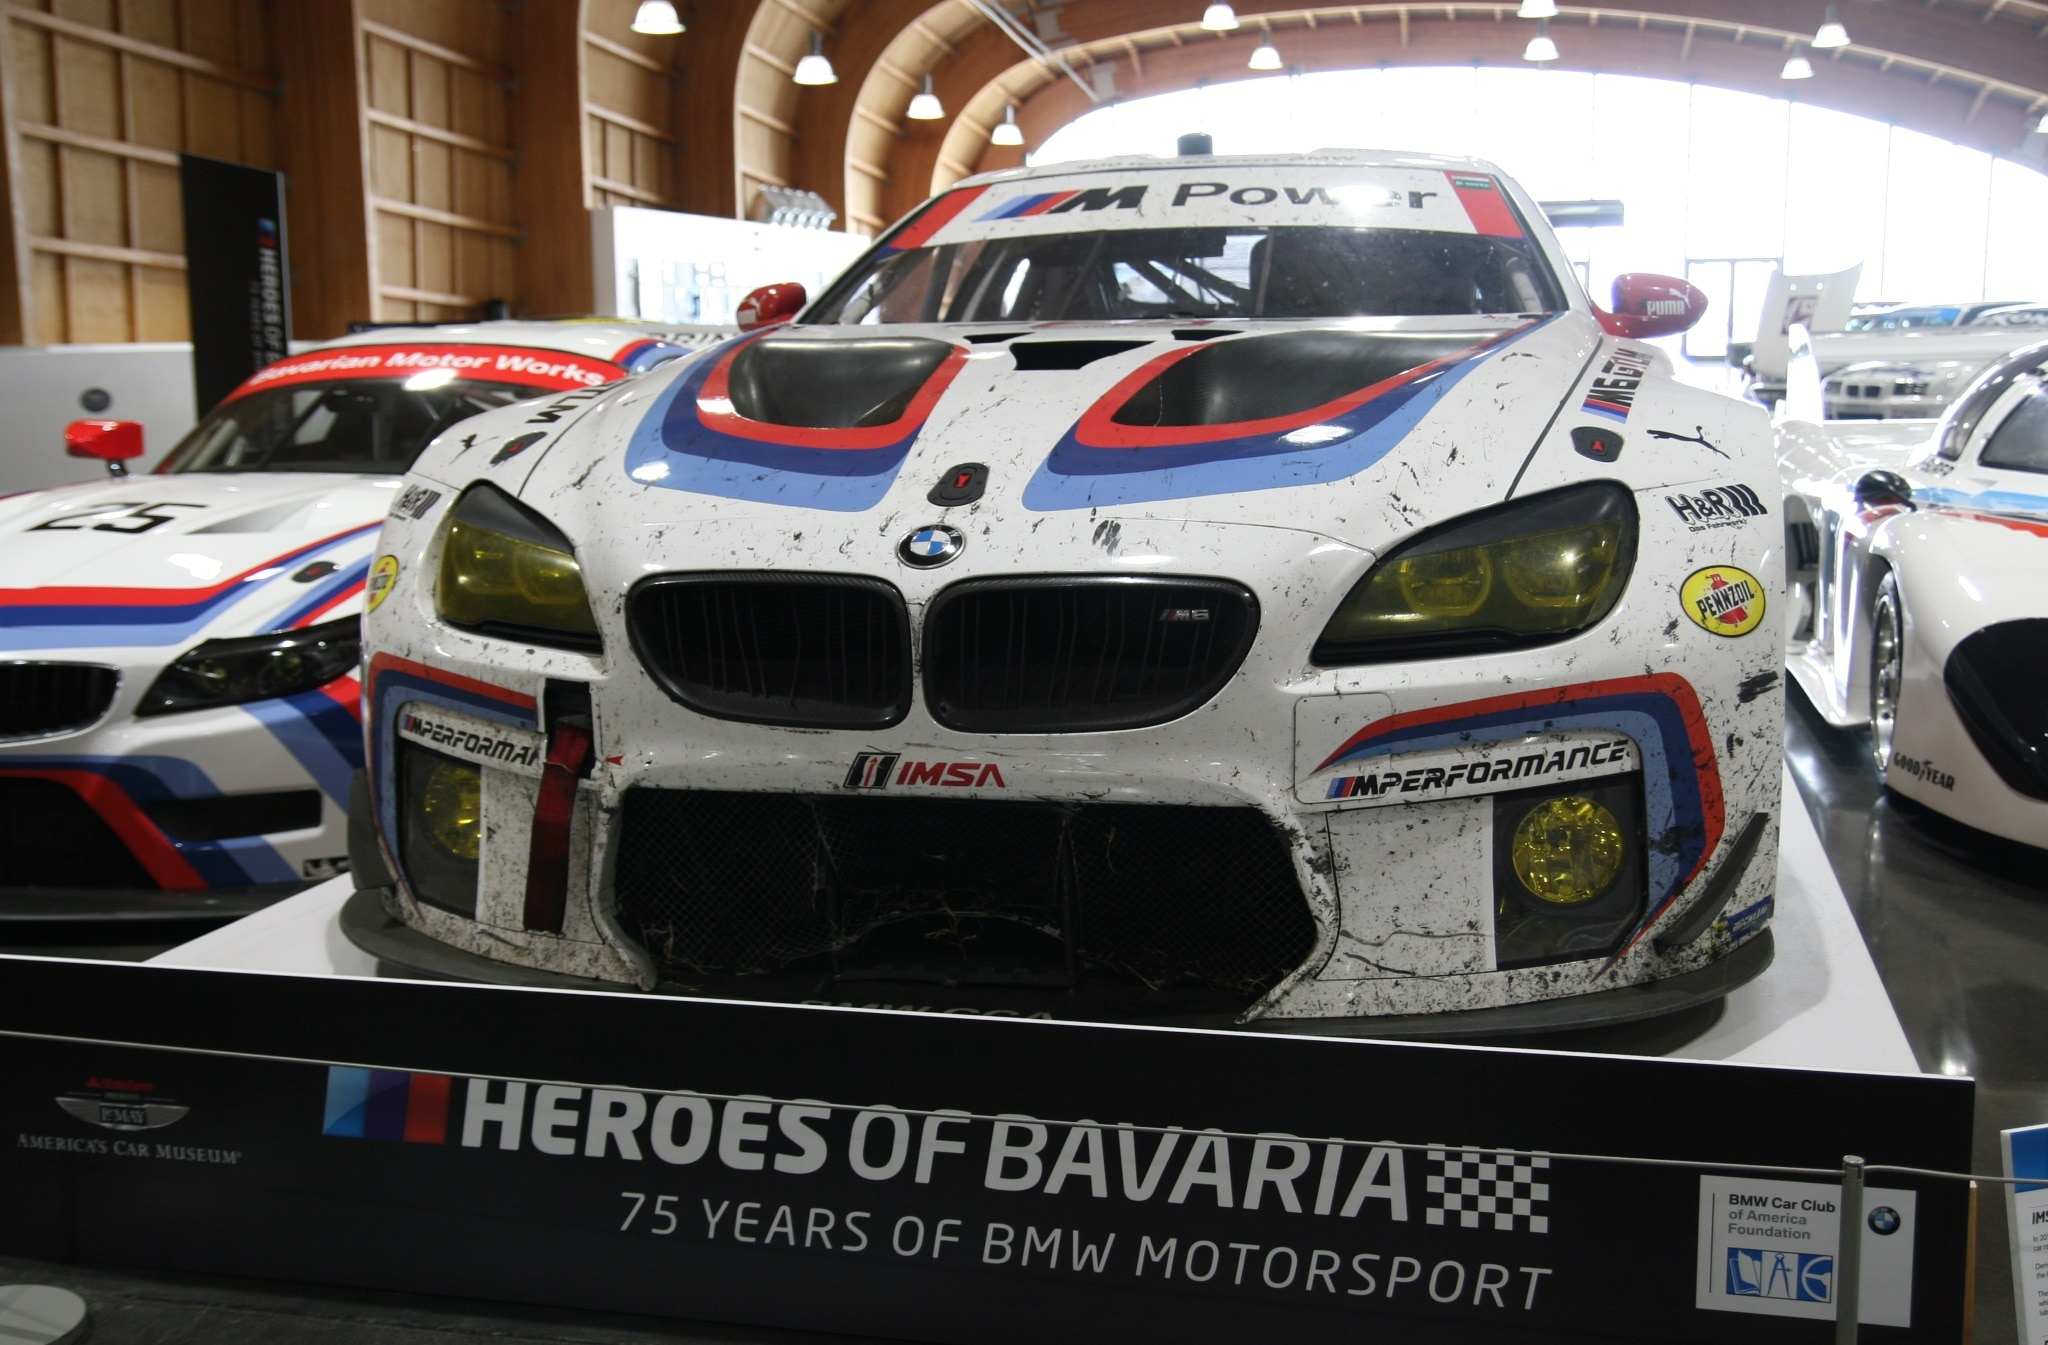 14 Cool Bmw Race Cars From Lemay America S Car Museum Automobile